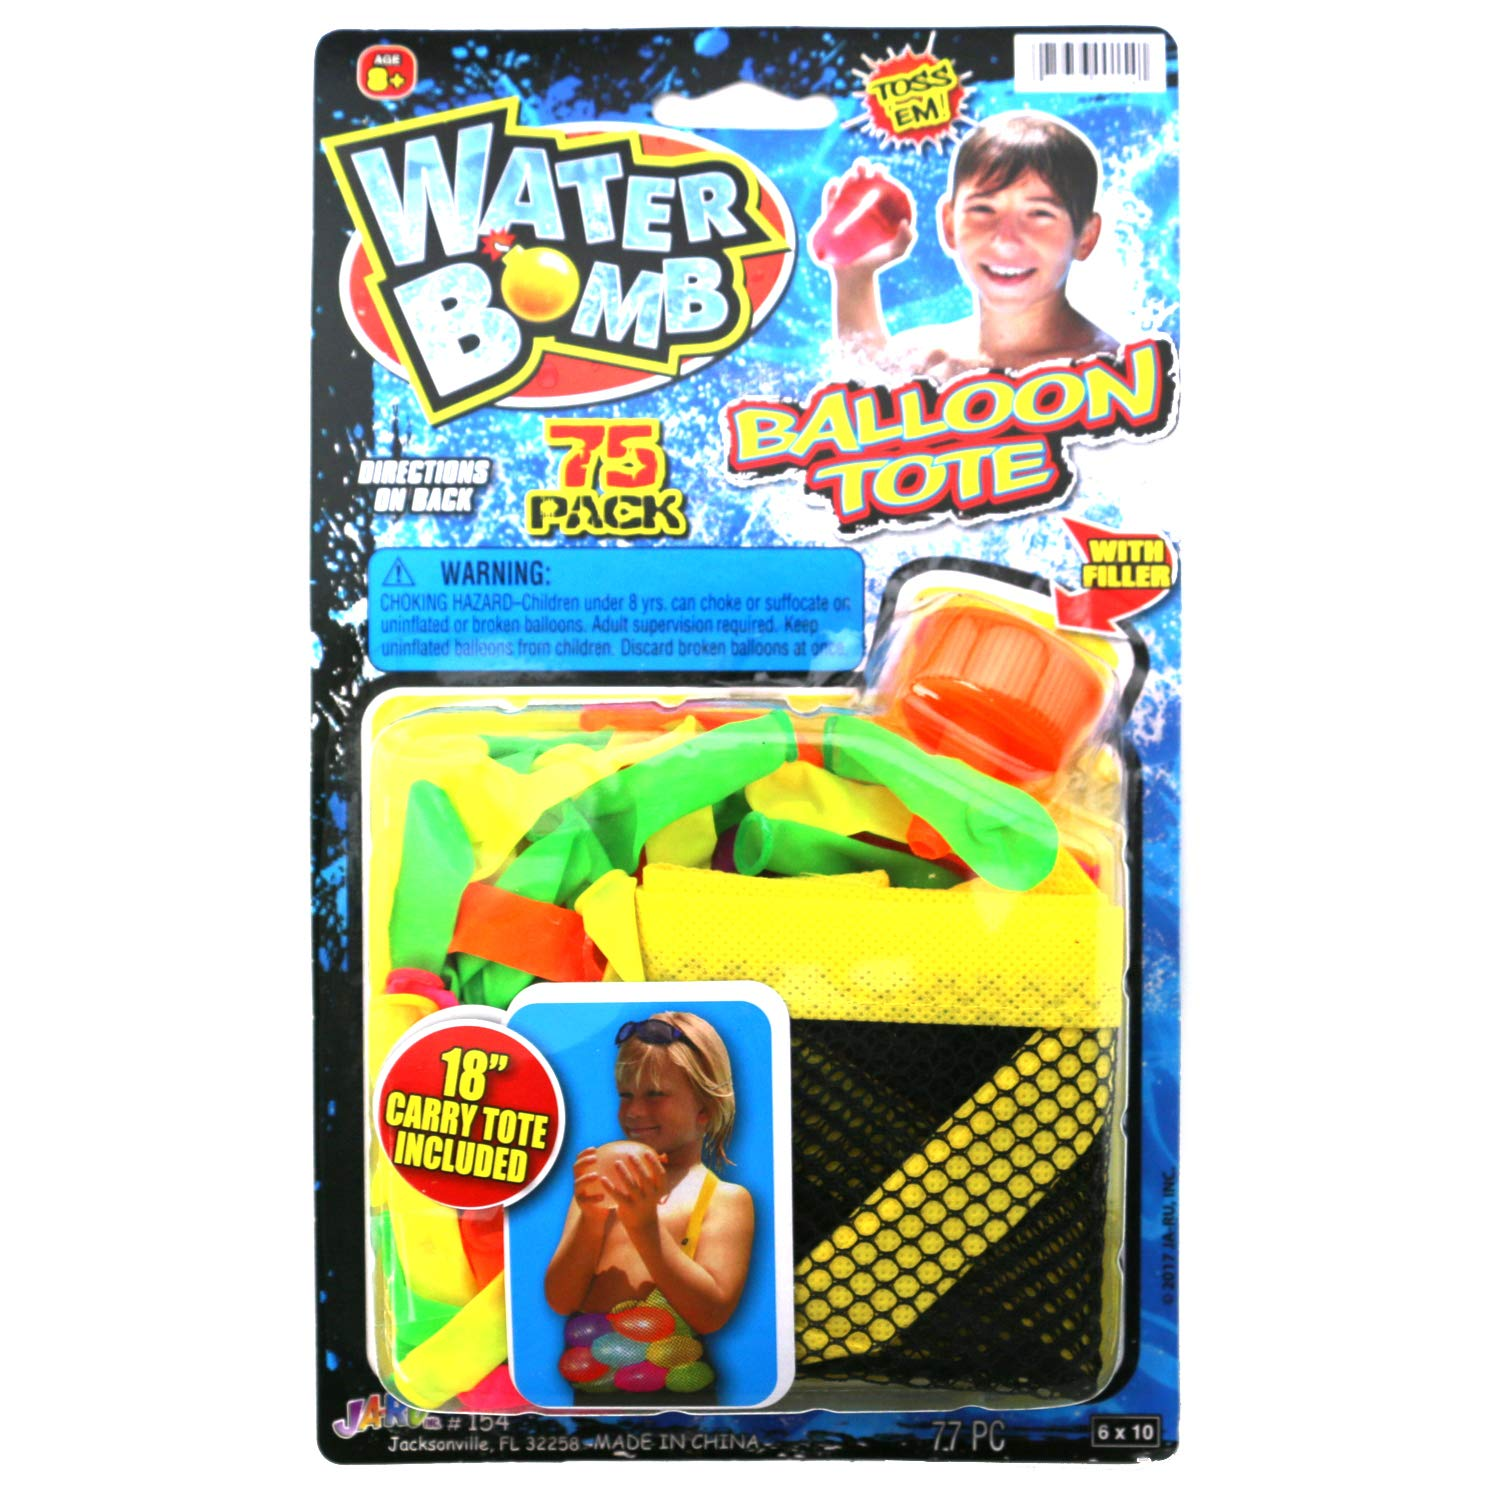 Ultimate 10 Piece Water Balloon Set 855 Water Balloons, Slinger, Carry Tote, Refill Gun, Water Balloon laucher Slingshot Water Balloon Party with 2 GosuToys Stickers by Gosu Toys (Image #4)